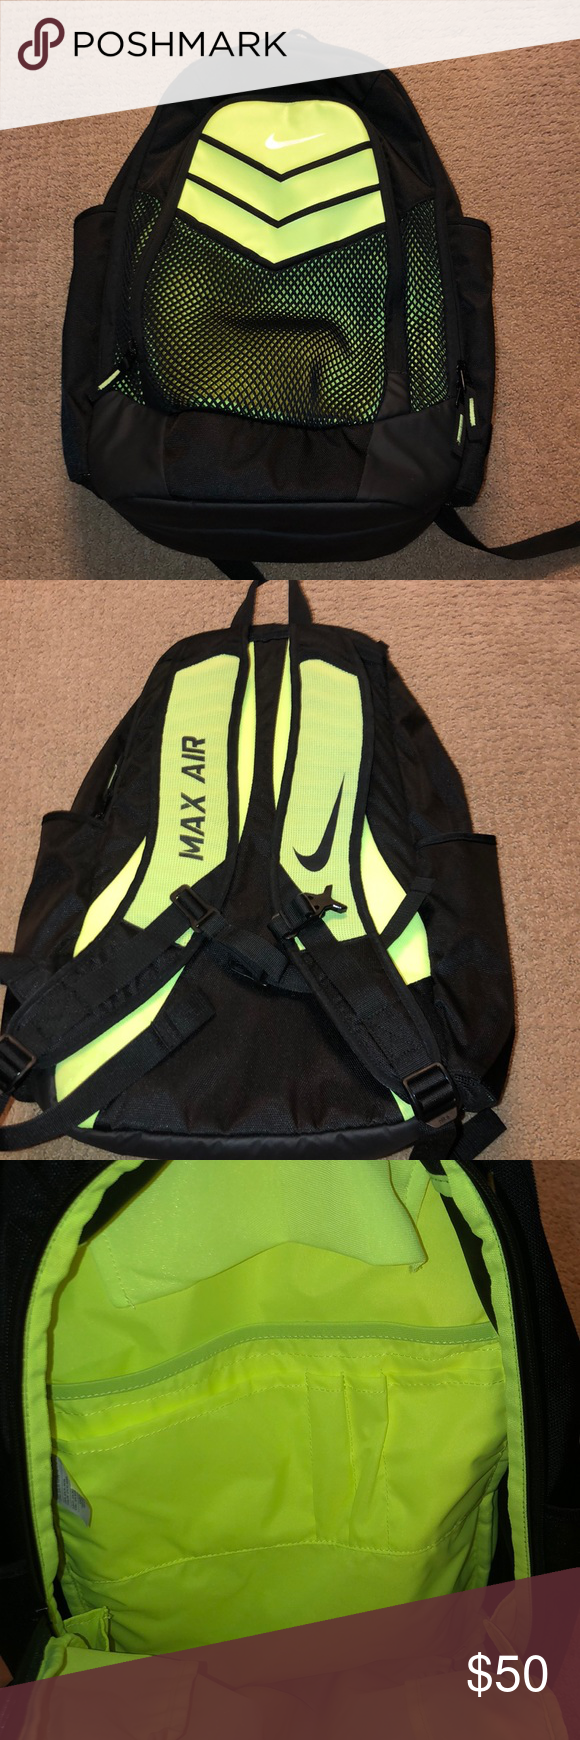 7a9523abce Nike backpack This is a neon yellow and black max air backpack. I have barely  used it and it is in good shape. Nike Bags Backpacks